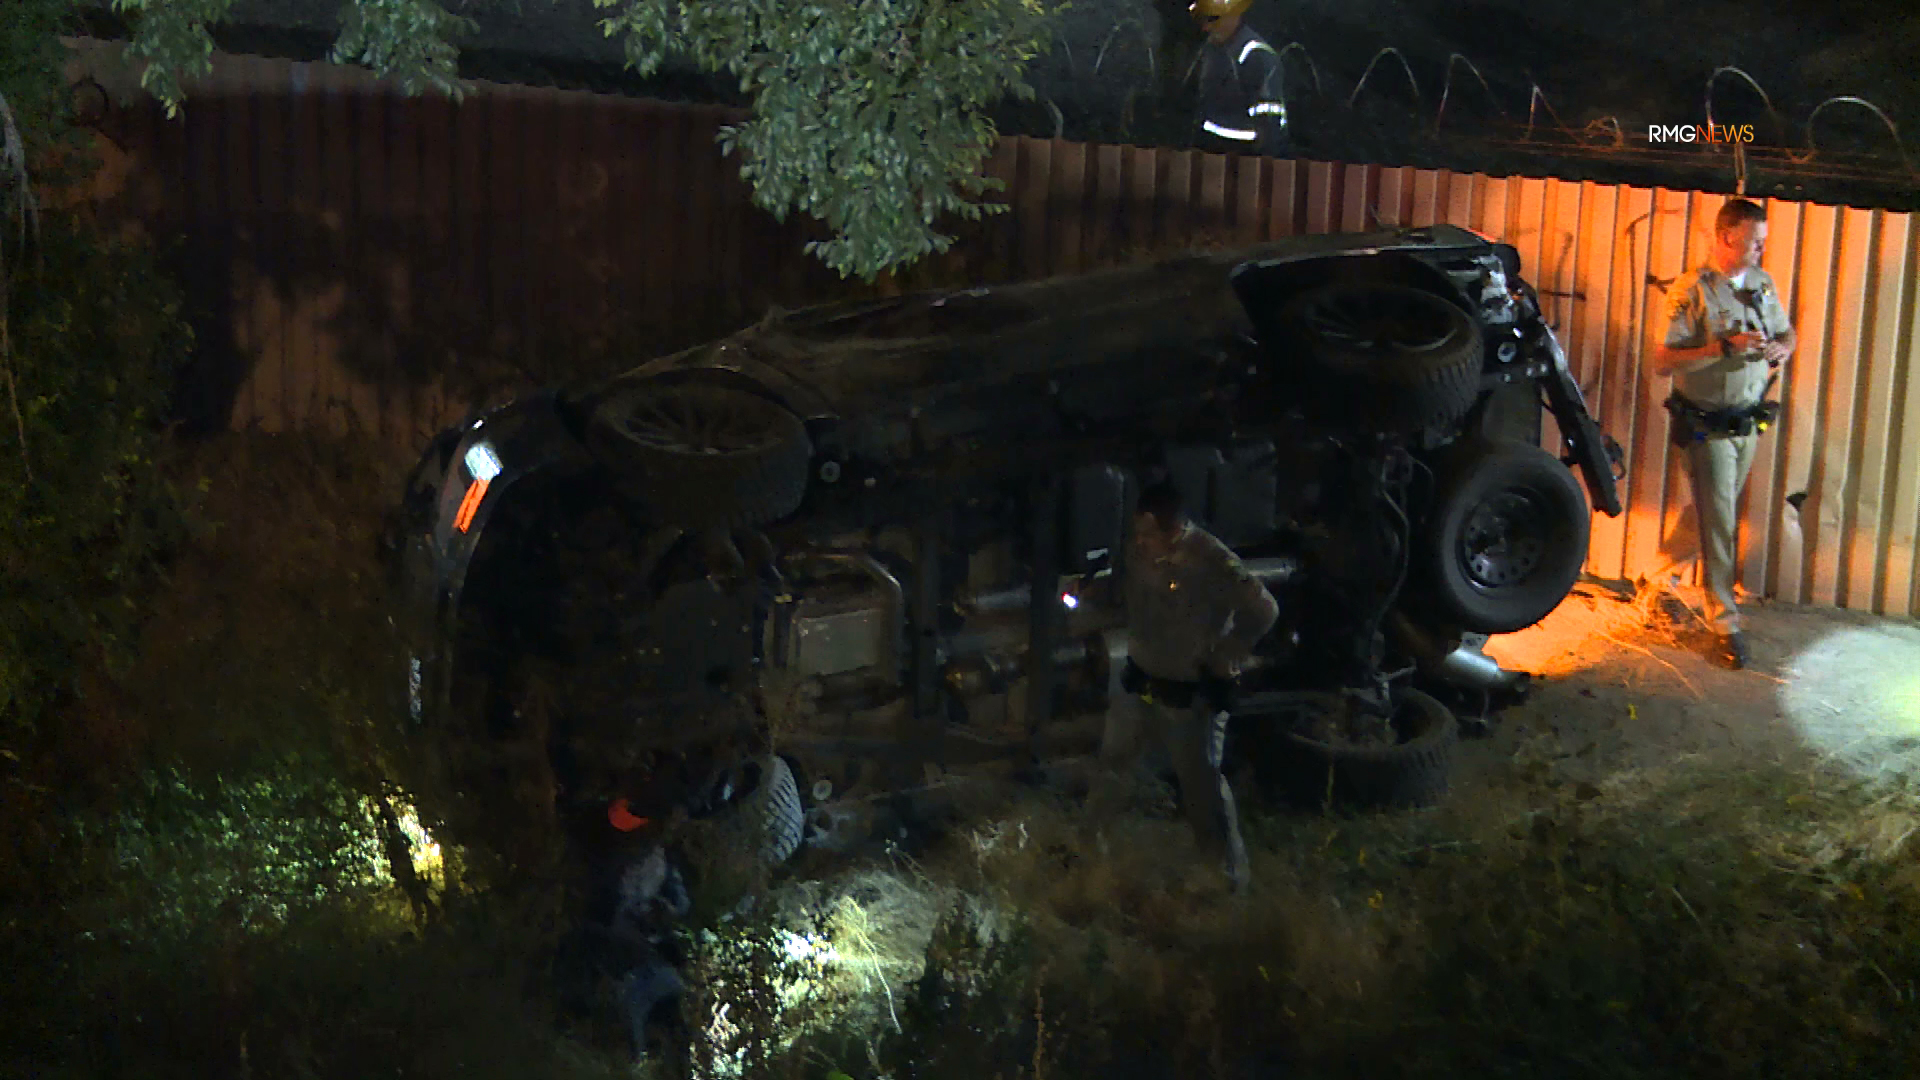 Authorities investigate a fatal crash along the 405 Freeway in Van Nuys on July 19, 2019. (Credit: RMG News)